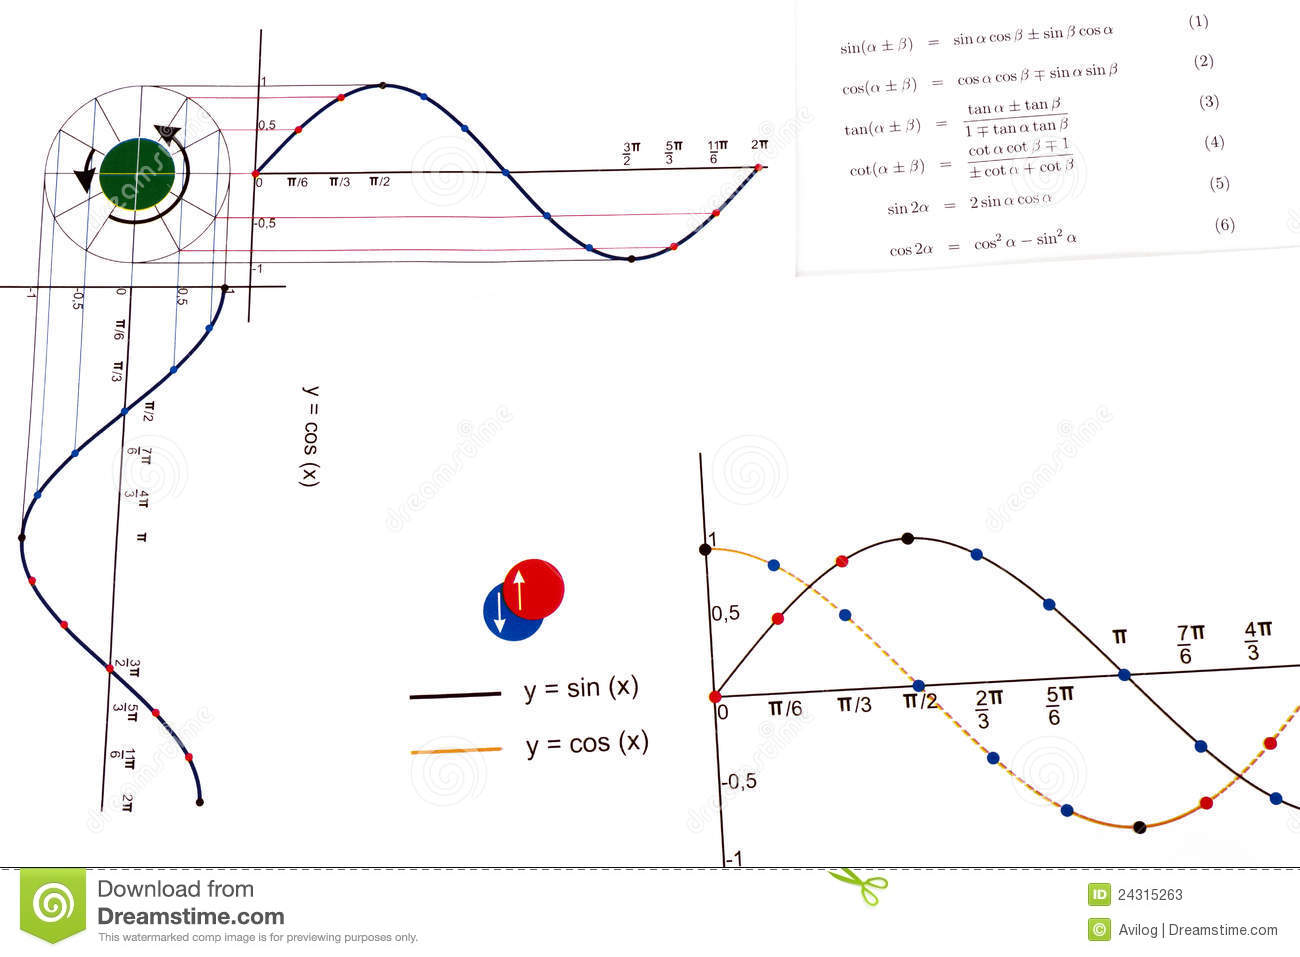 pr elements and functions Comparison of tetrahedral and brick elements for linear elastic analysis quadratic shape functions are used to model three different tests.